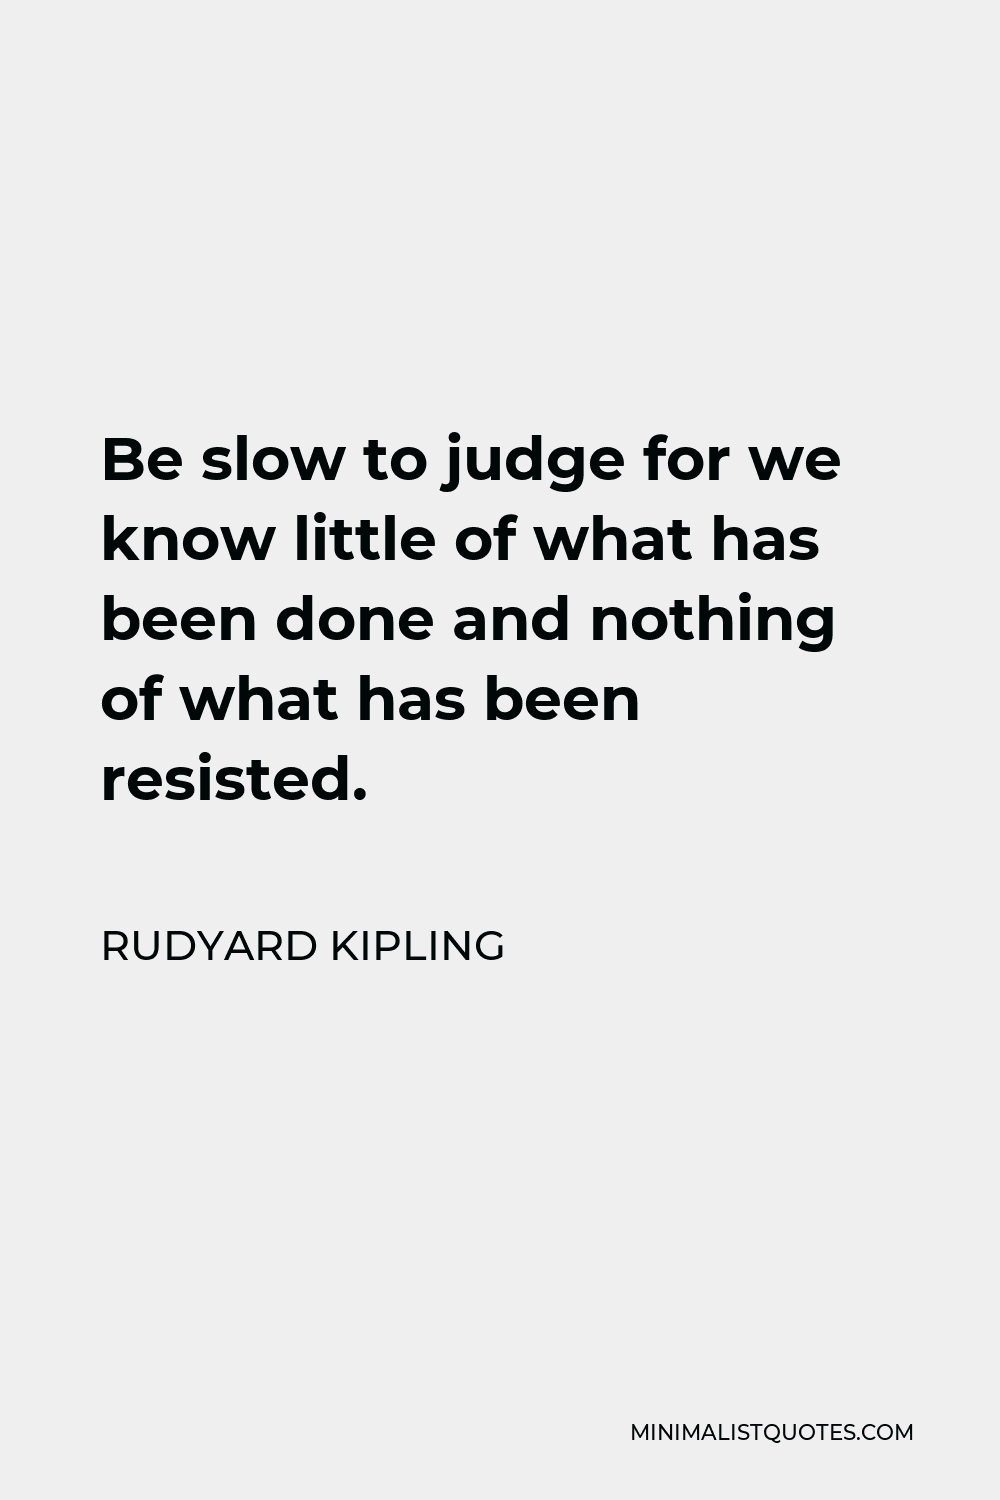 Rudyard Kipling Quote - Be slow to judge for we know little of what has been done and nothing of what has been resisted.